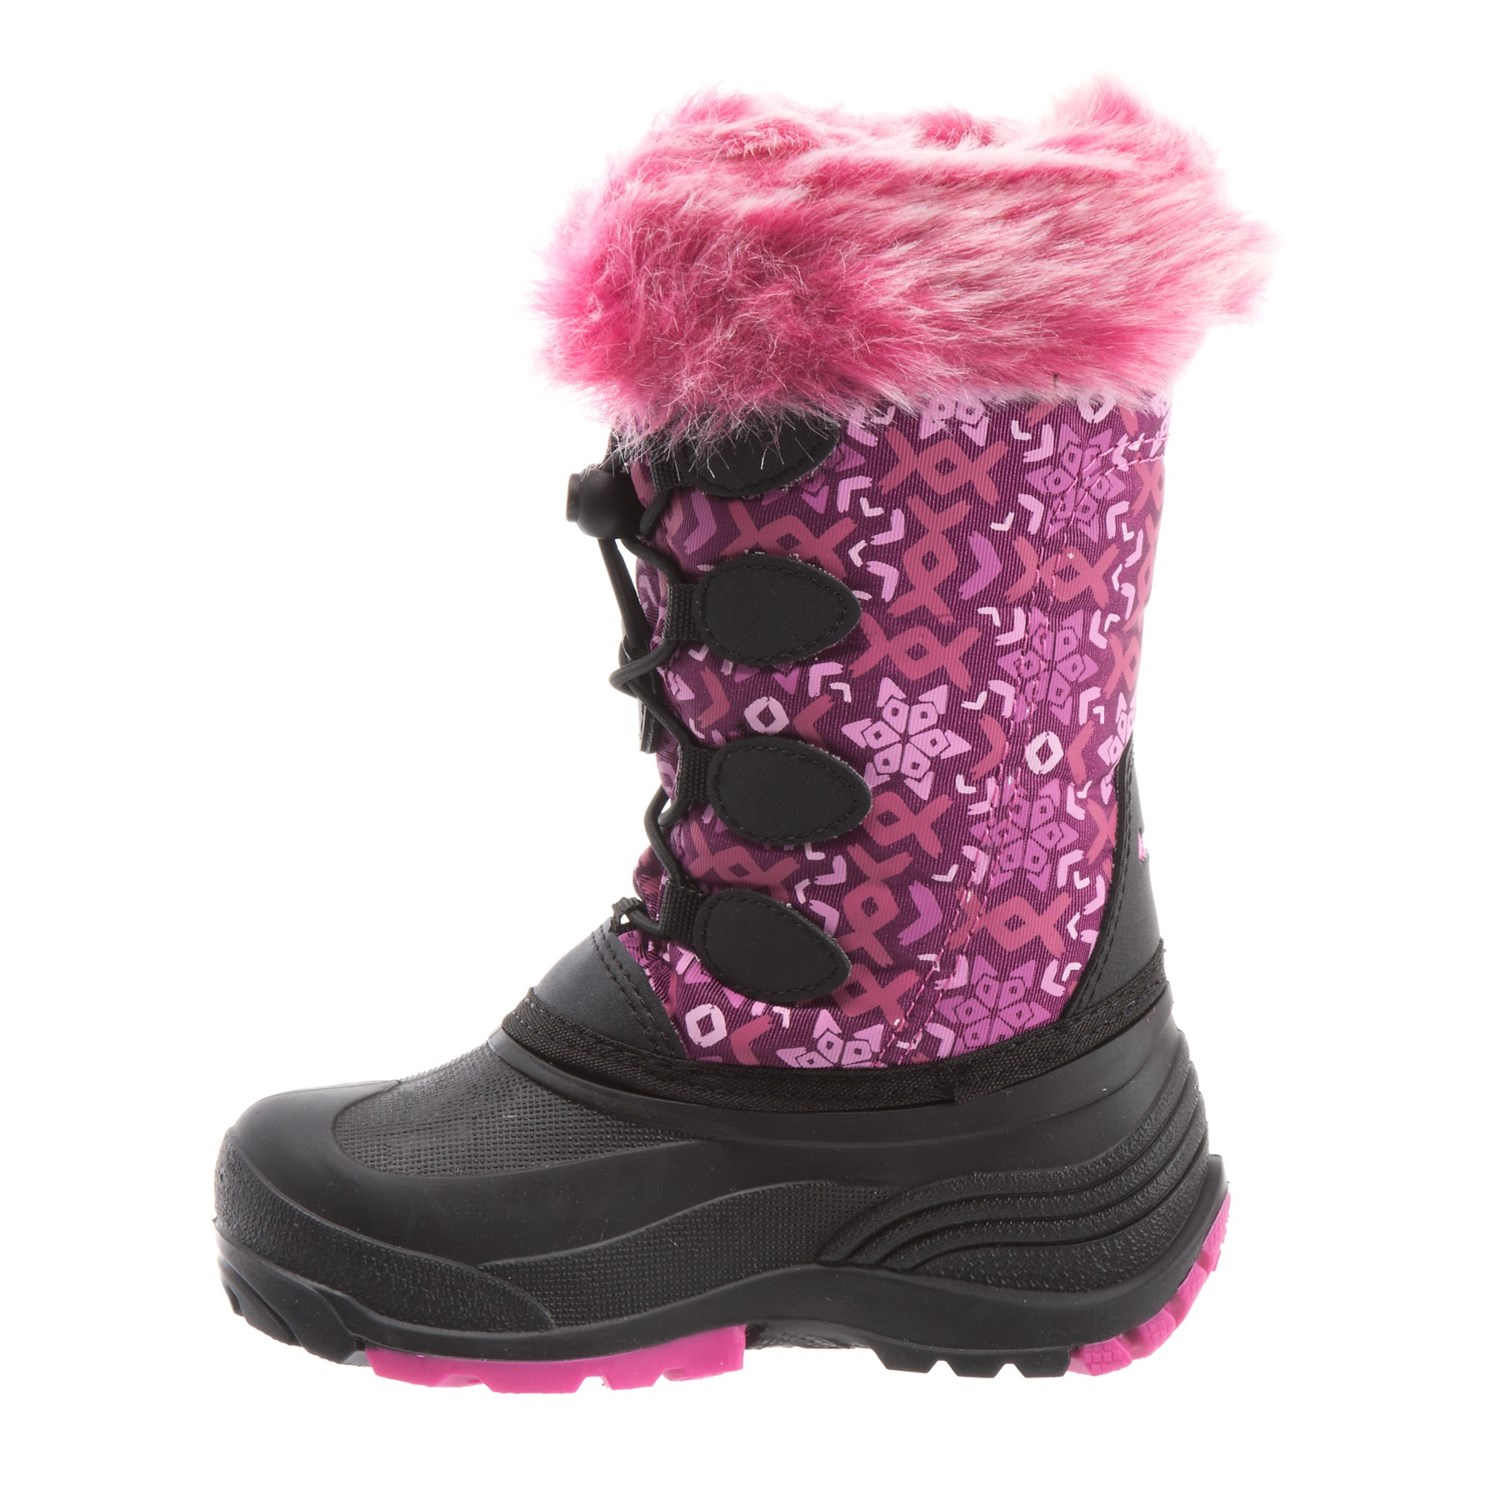 50d631ffcbdd4 Kamik Snowgypsy 2 Pac Boots (For Girls) - Save 75%